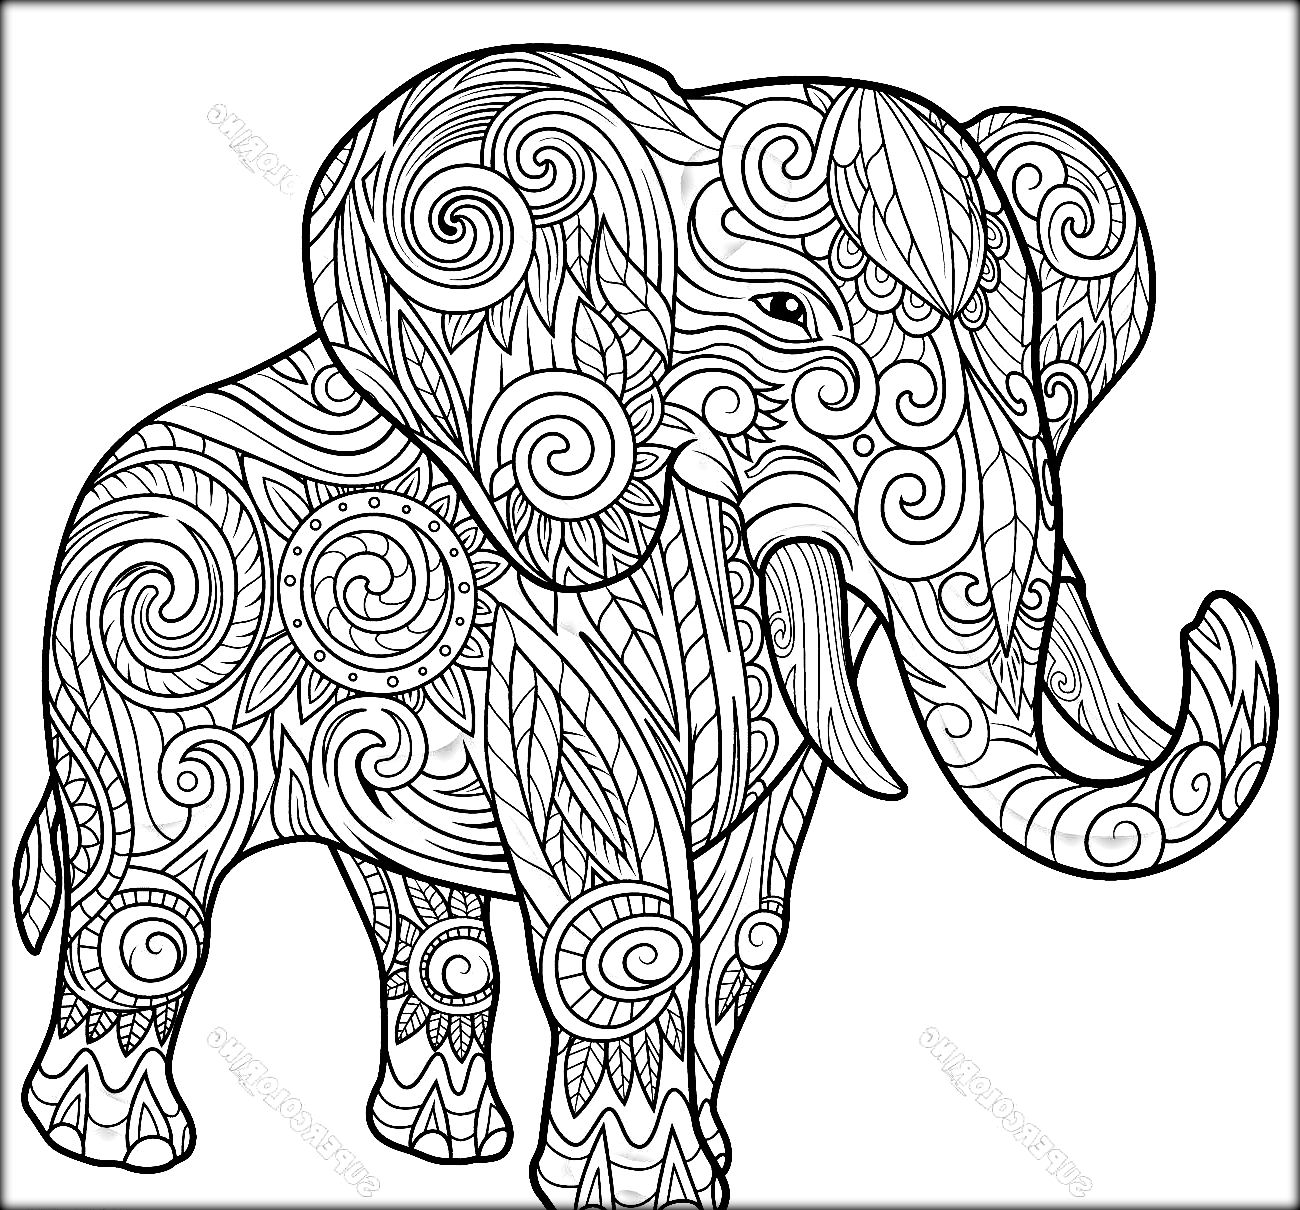 1300x1210 Coloring Pages For Adults Elephant